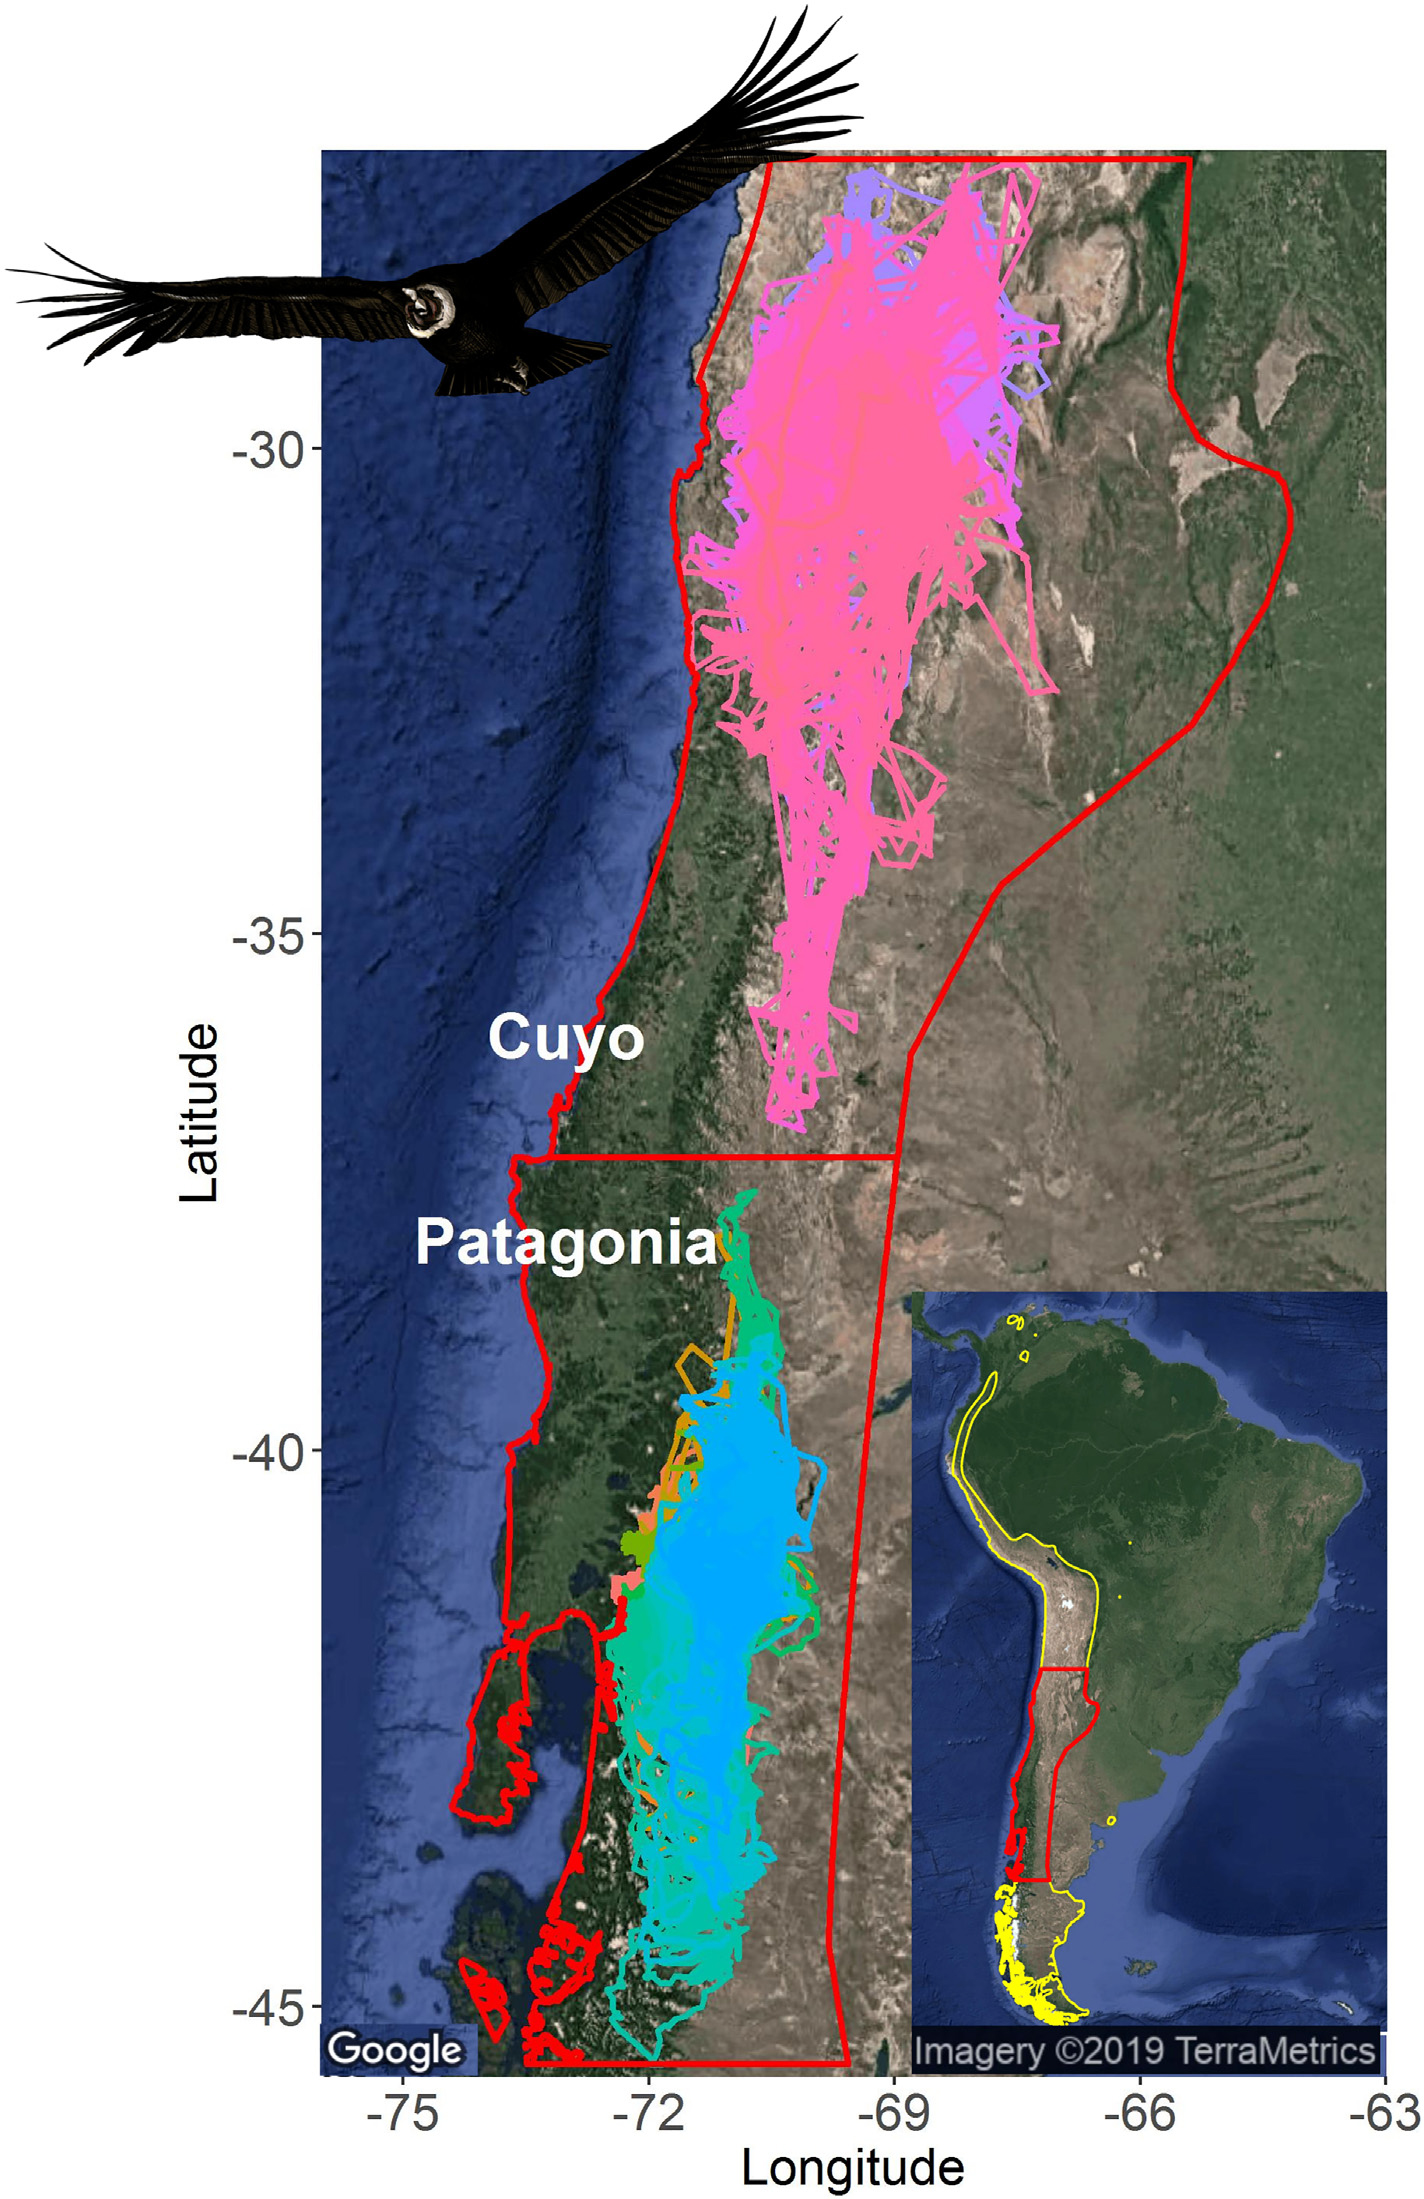 Tracks of the condors within the two study regions, Cuyo in the north and Patagonia in the south. The colors represent different individuals. Yellow contour indicates Andean condor distributional range, and red line the study area. (credit University of Wisconsin-Madison)